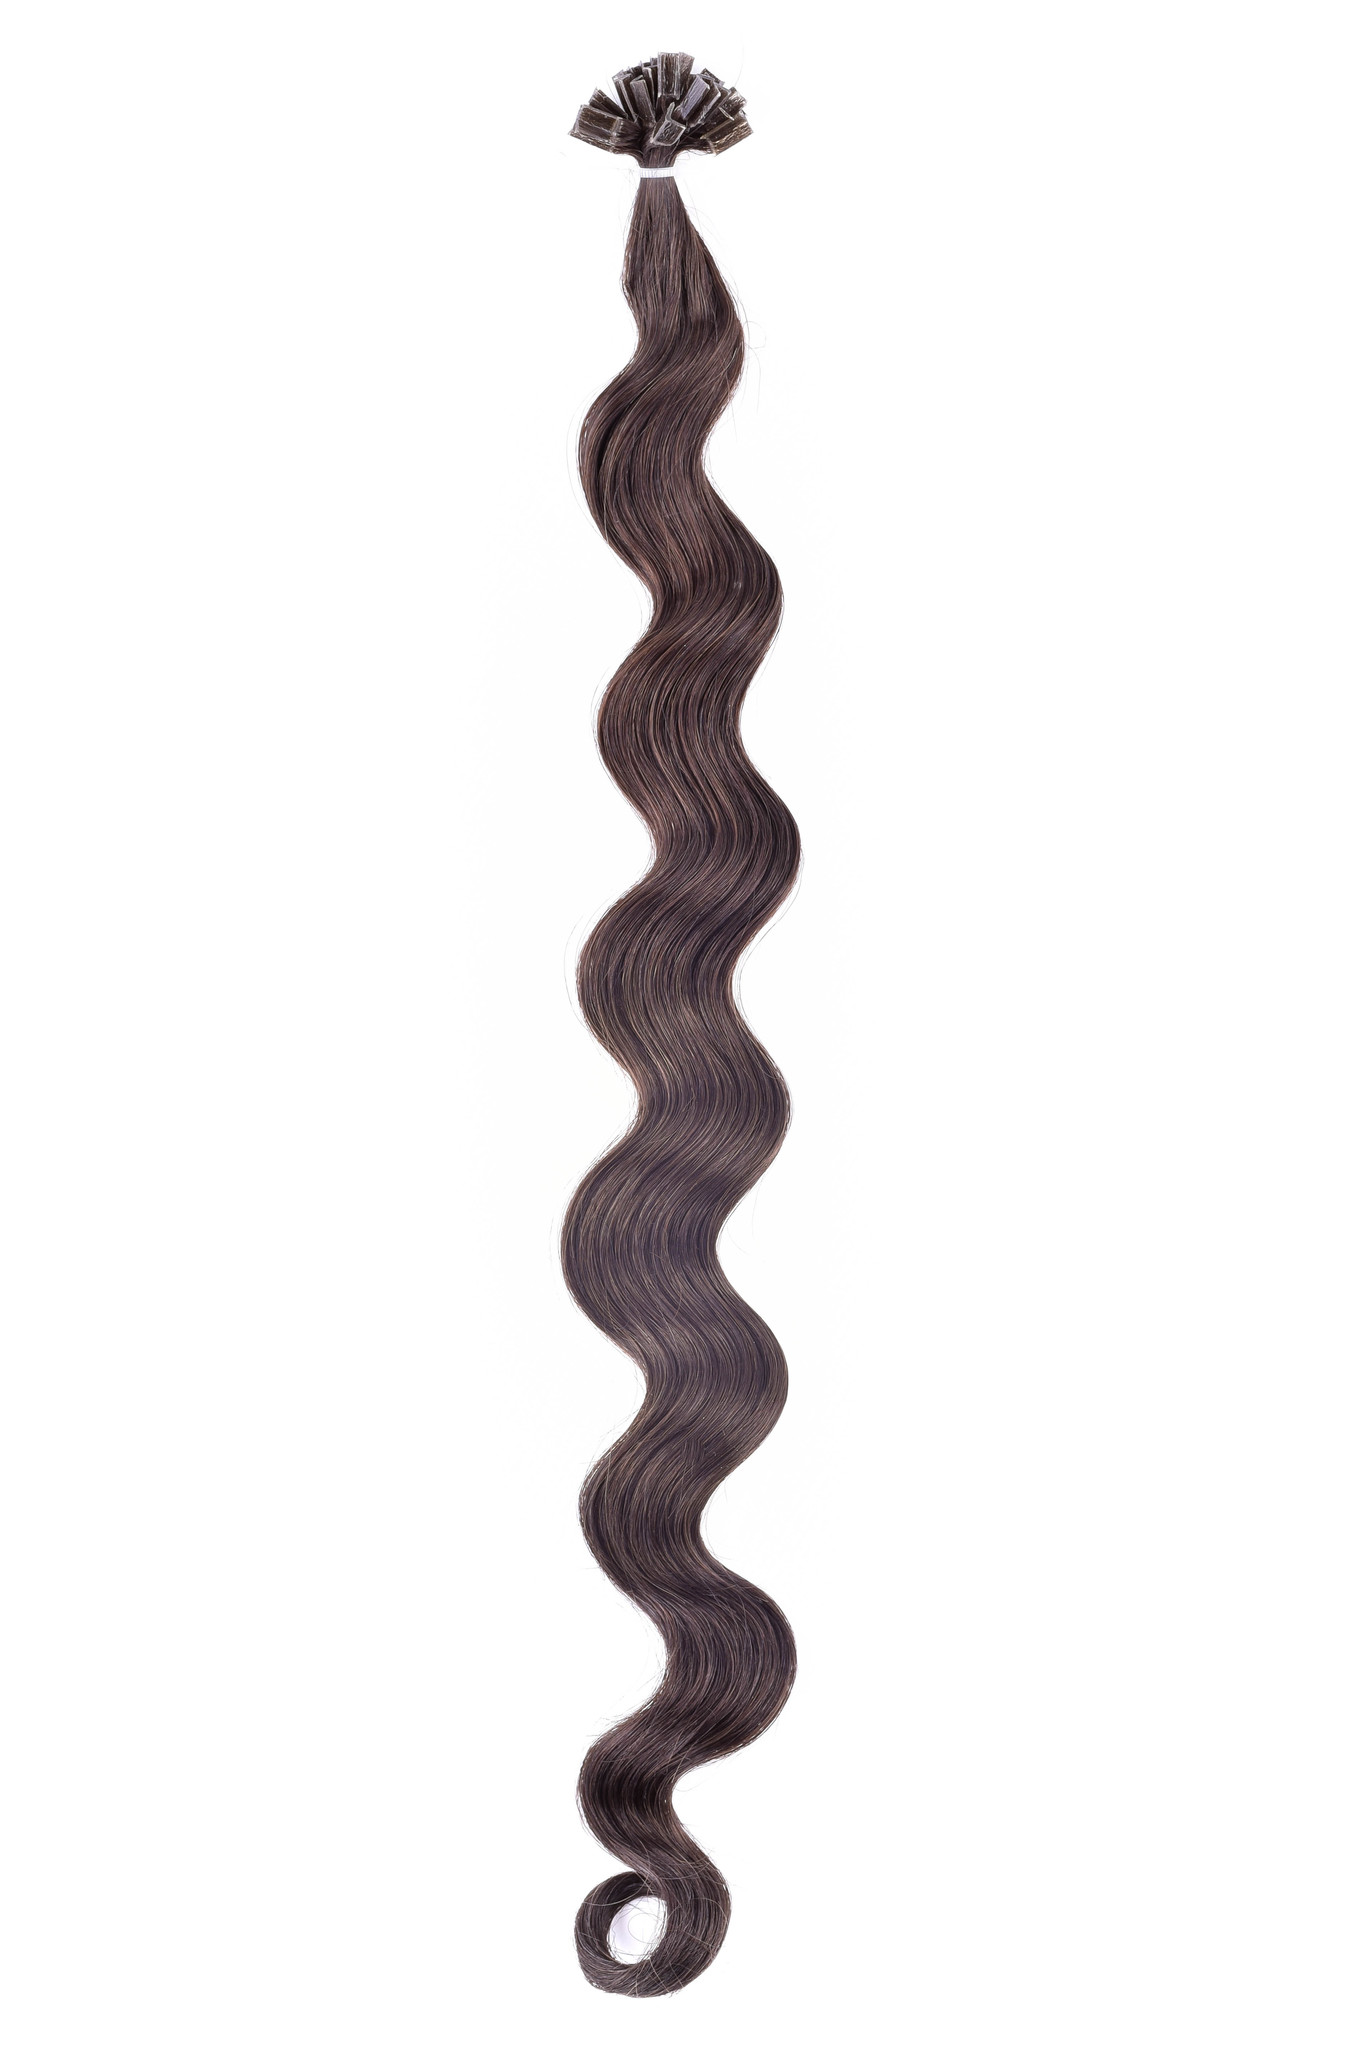 SilverFox Wax Extensions Loose Wave 55cm #18 Stawberry Blonde